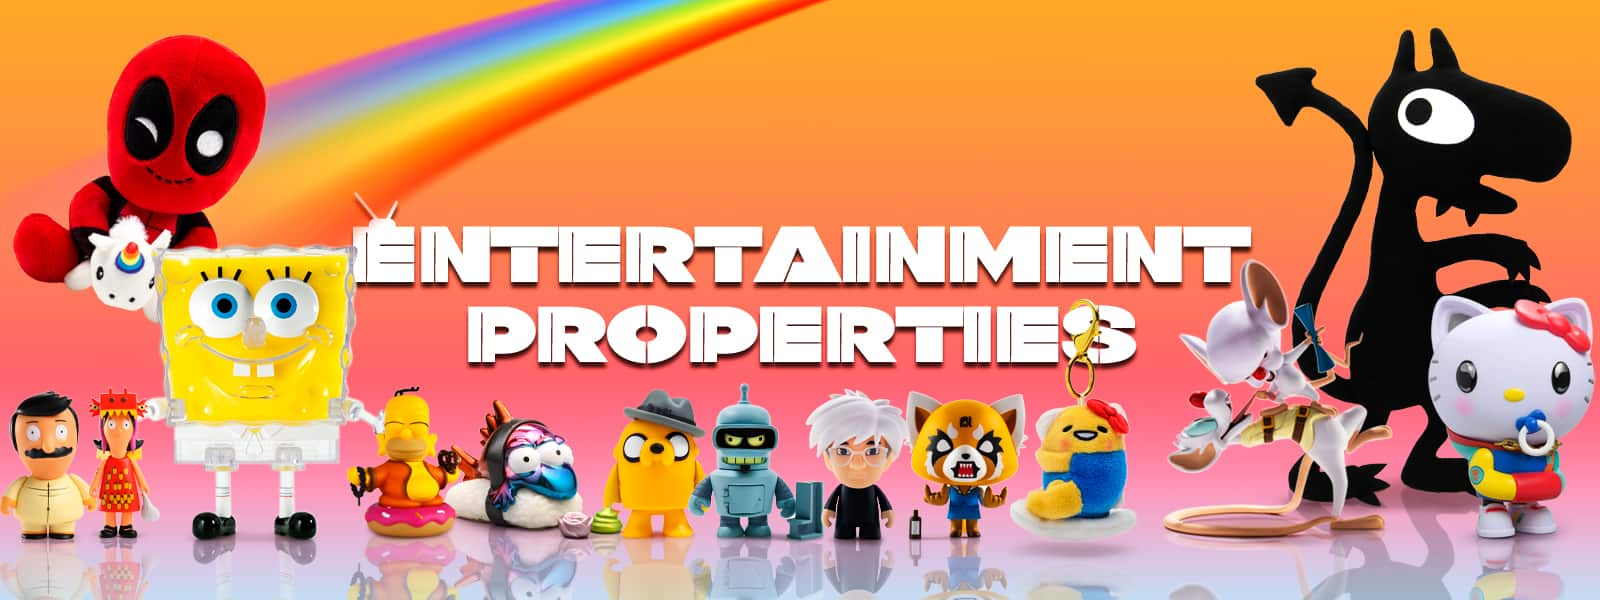 Entertainment Property Toys by Kidrobot